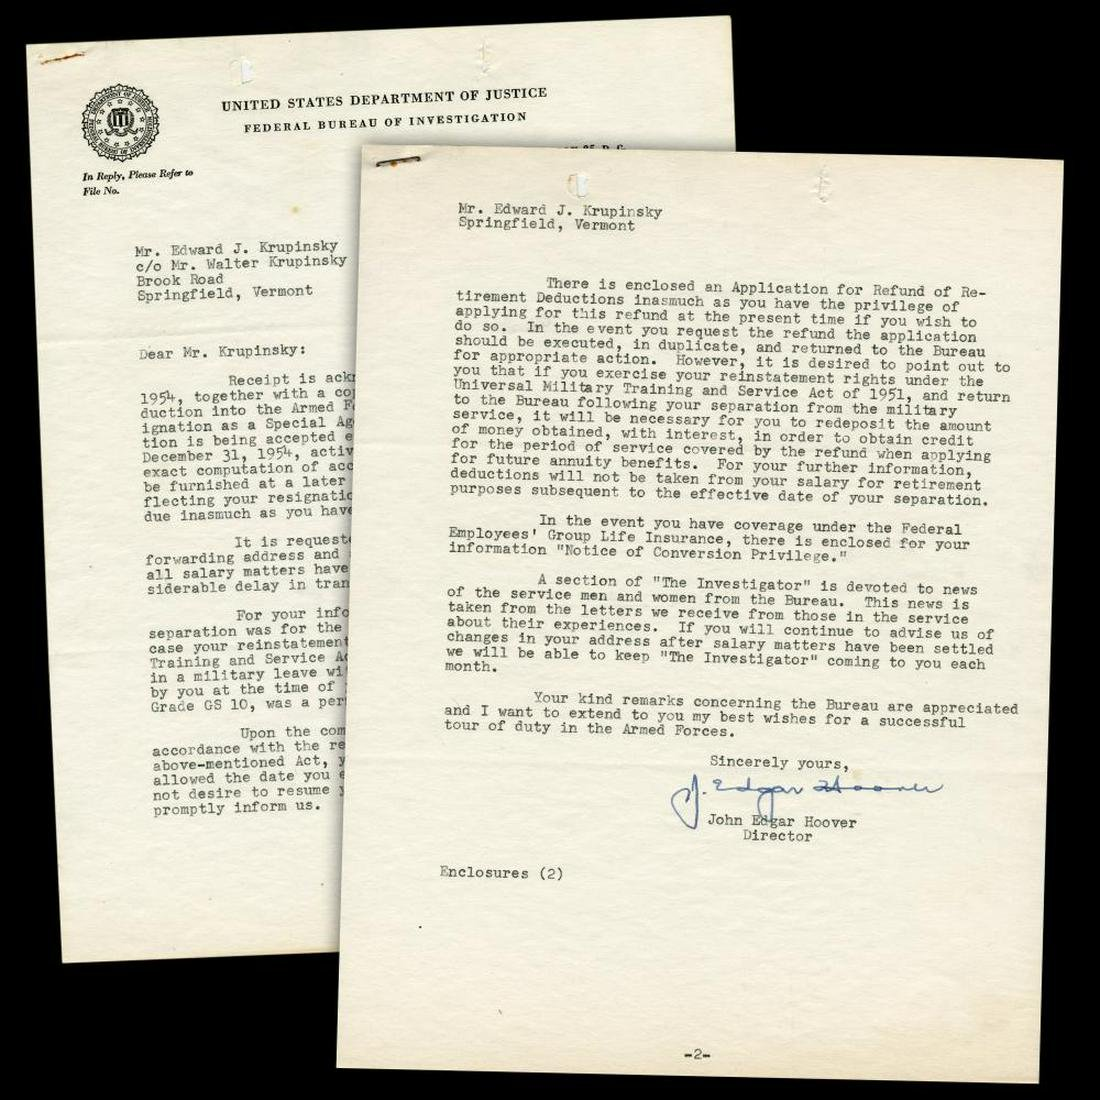 J  Edgar Hoover Great Letter Re: Agent Going into the